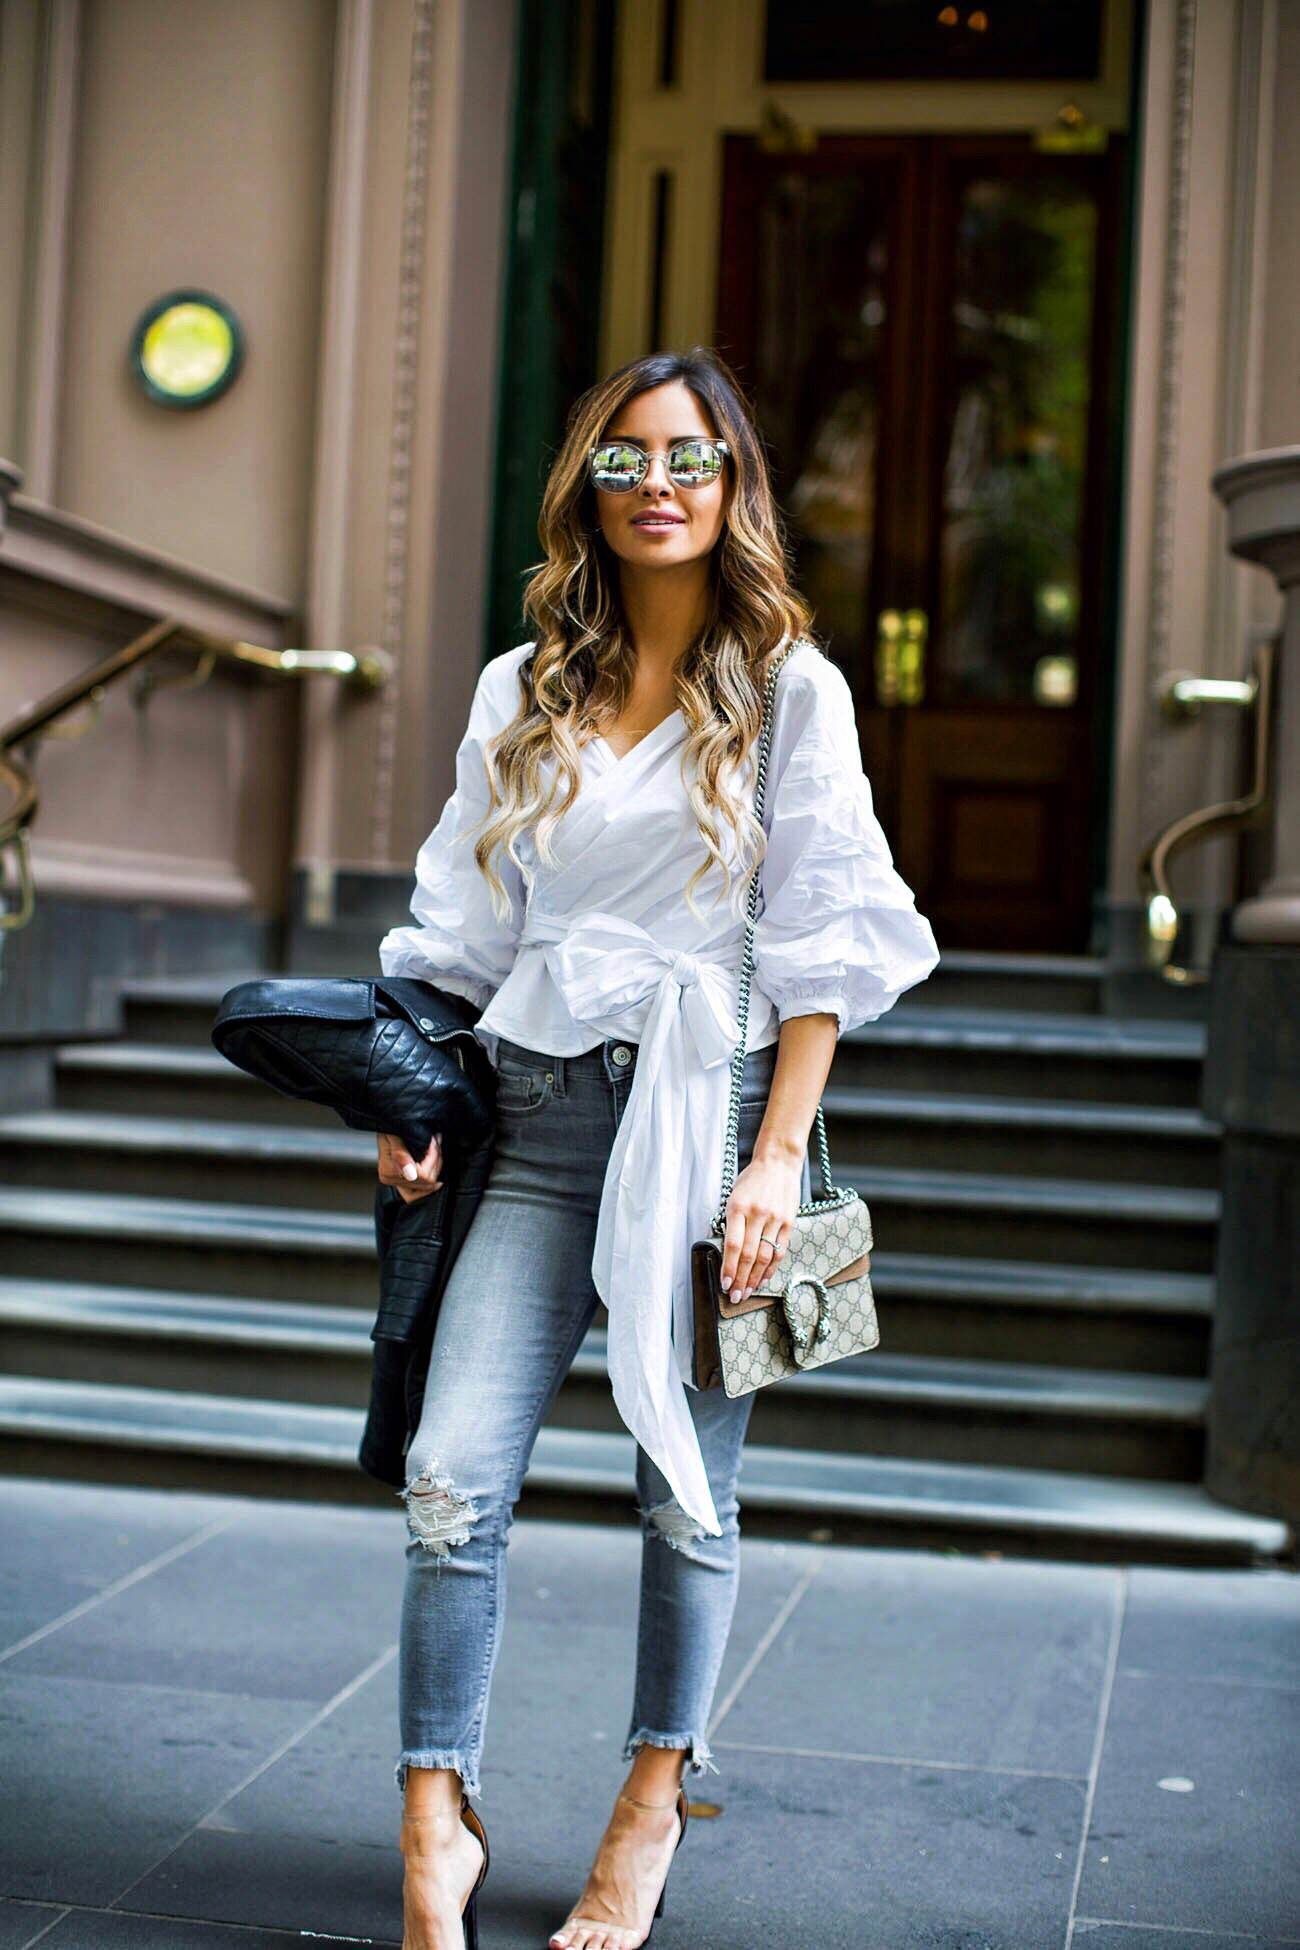 08a7edae780 Fashion blogger Mia Mia Mine wearing a white top and gray jeans from  express in Melbourne Australia